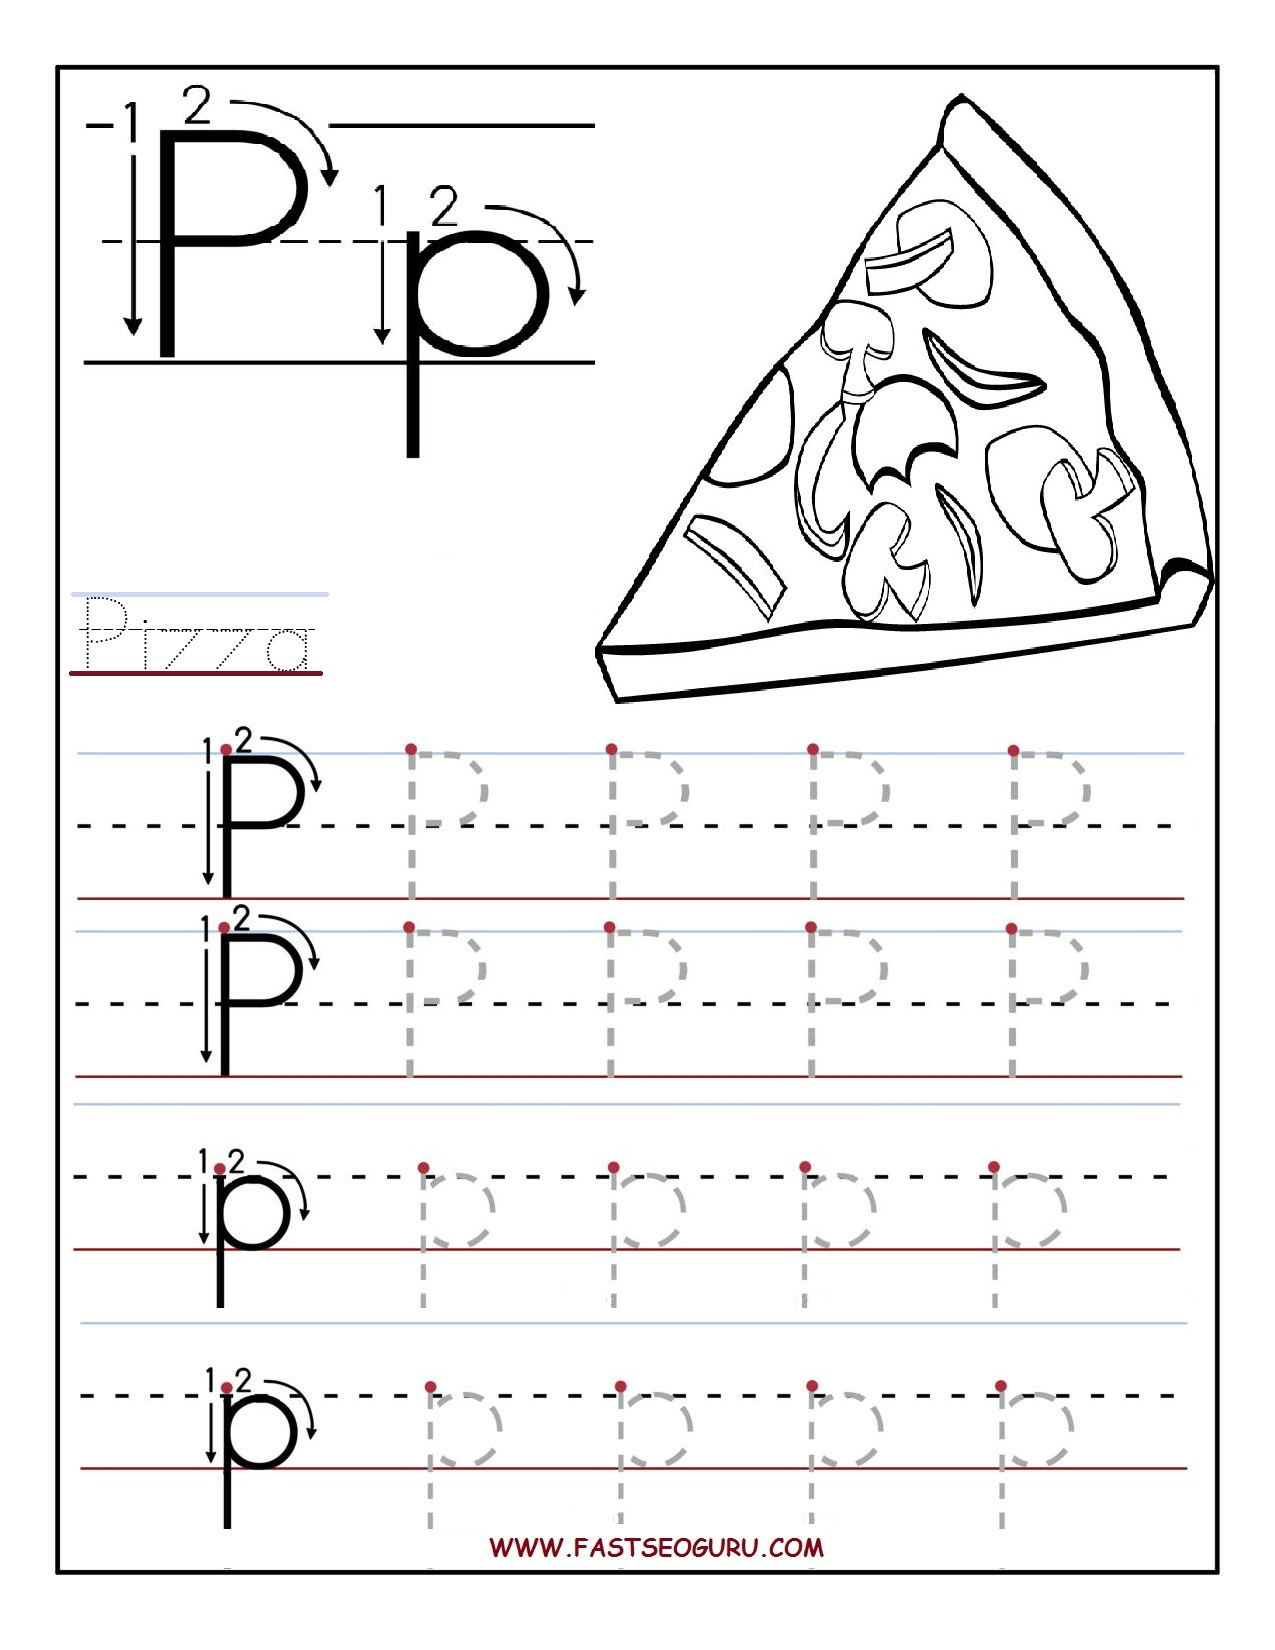 Tracing Worksheets Printable Letters And Worksheets On